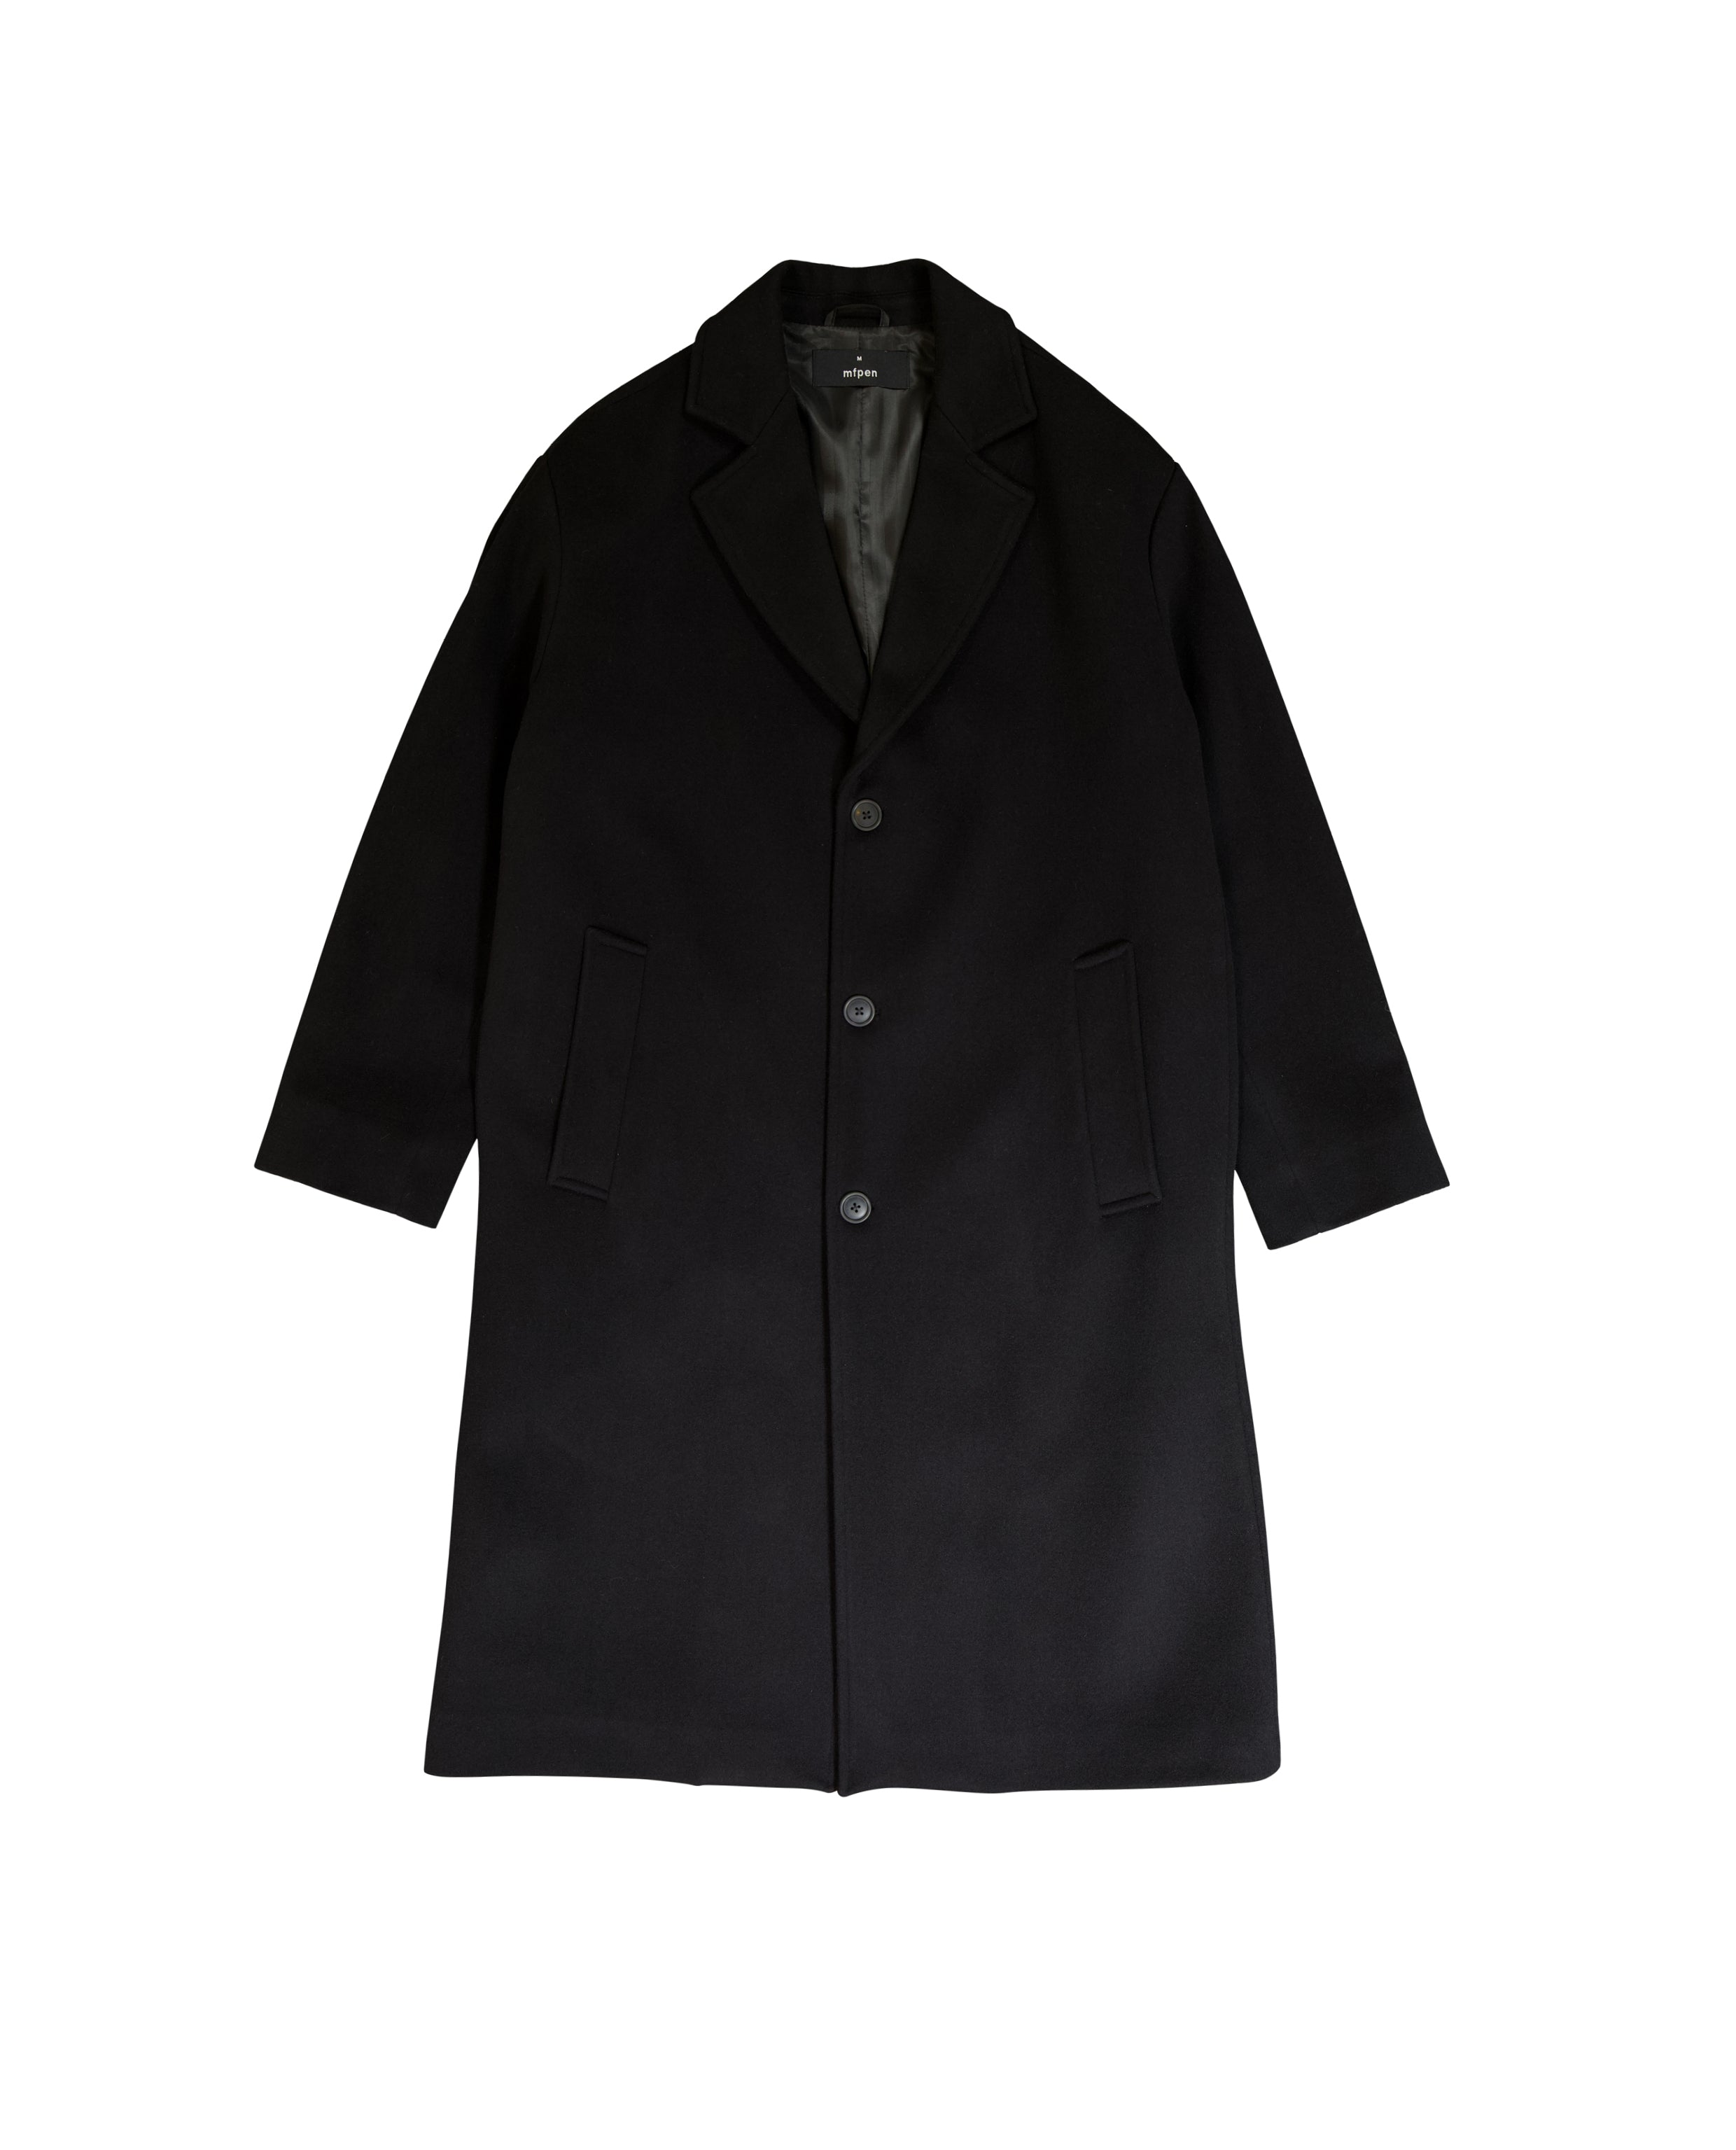 OBJECTS COAT - BLACK